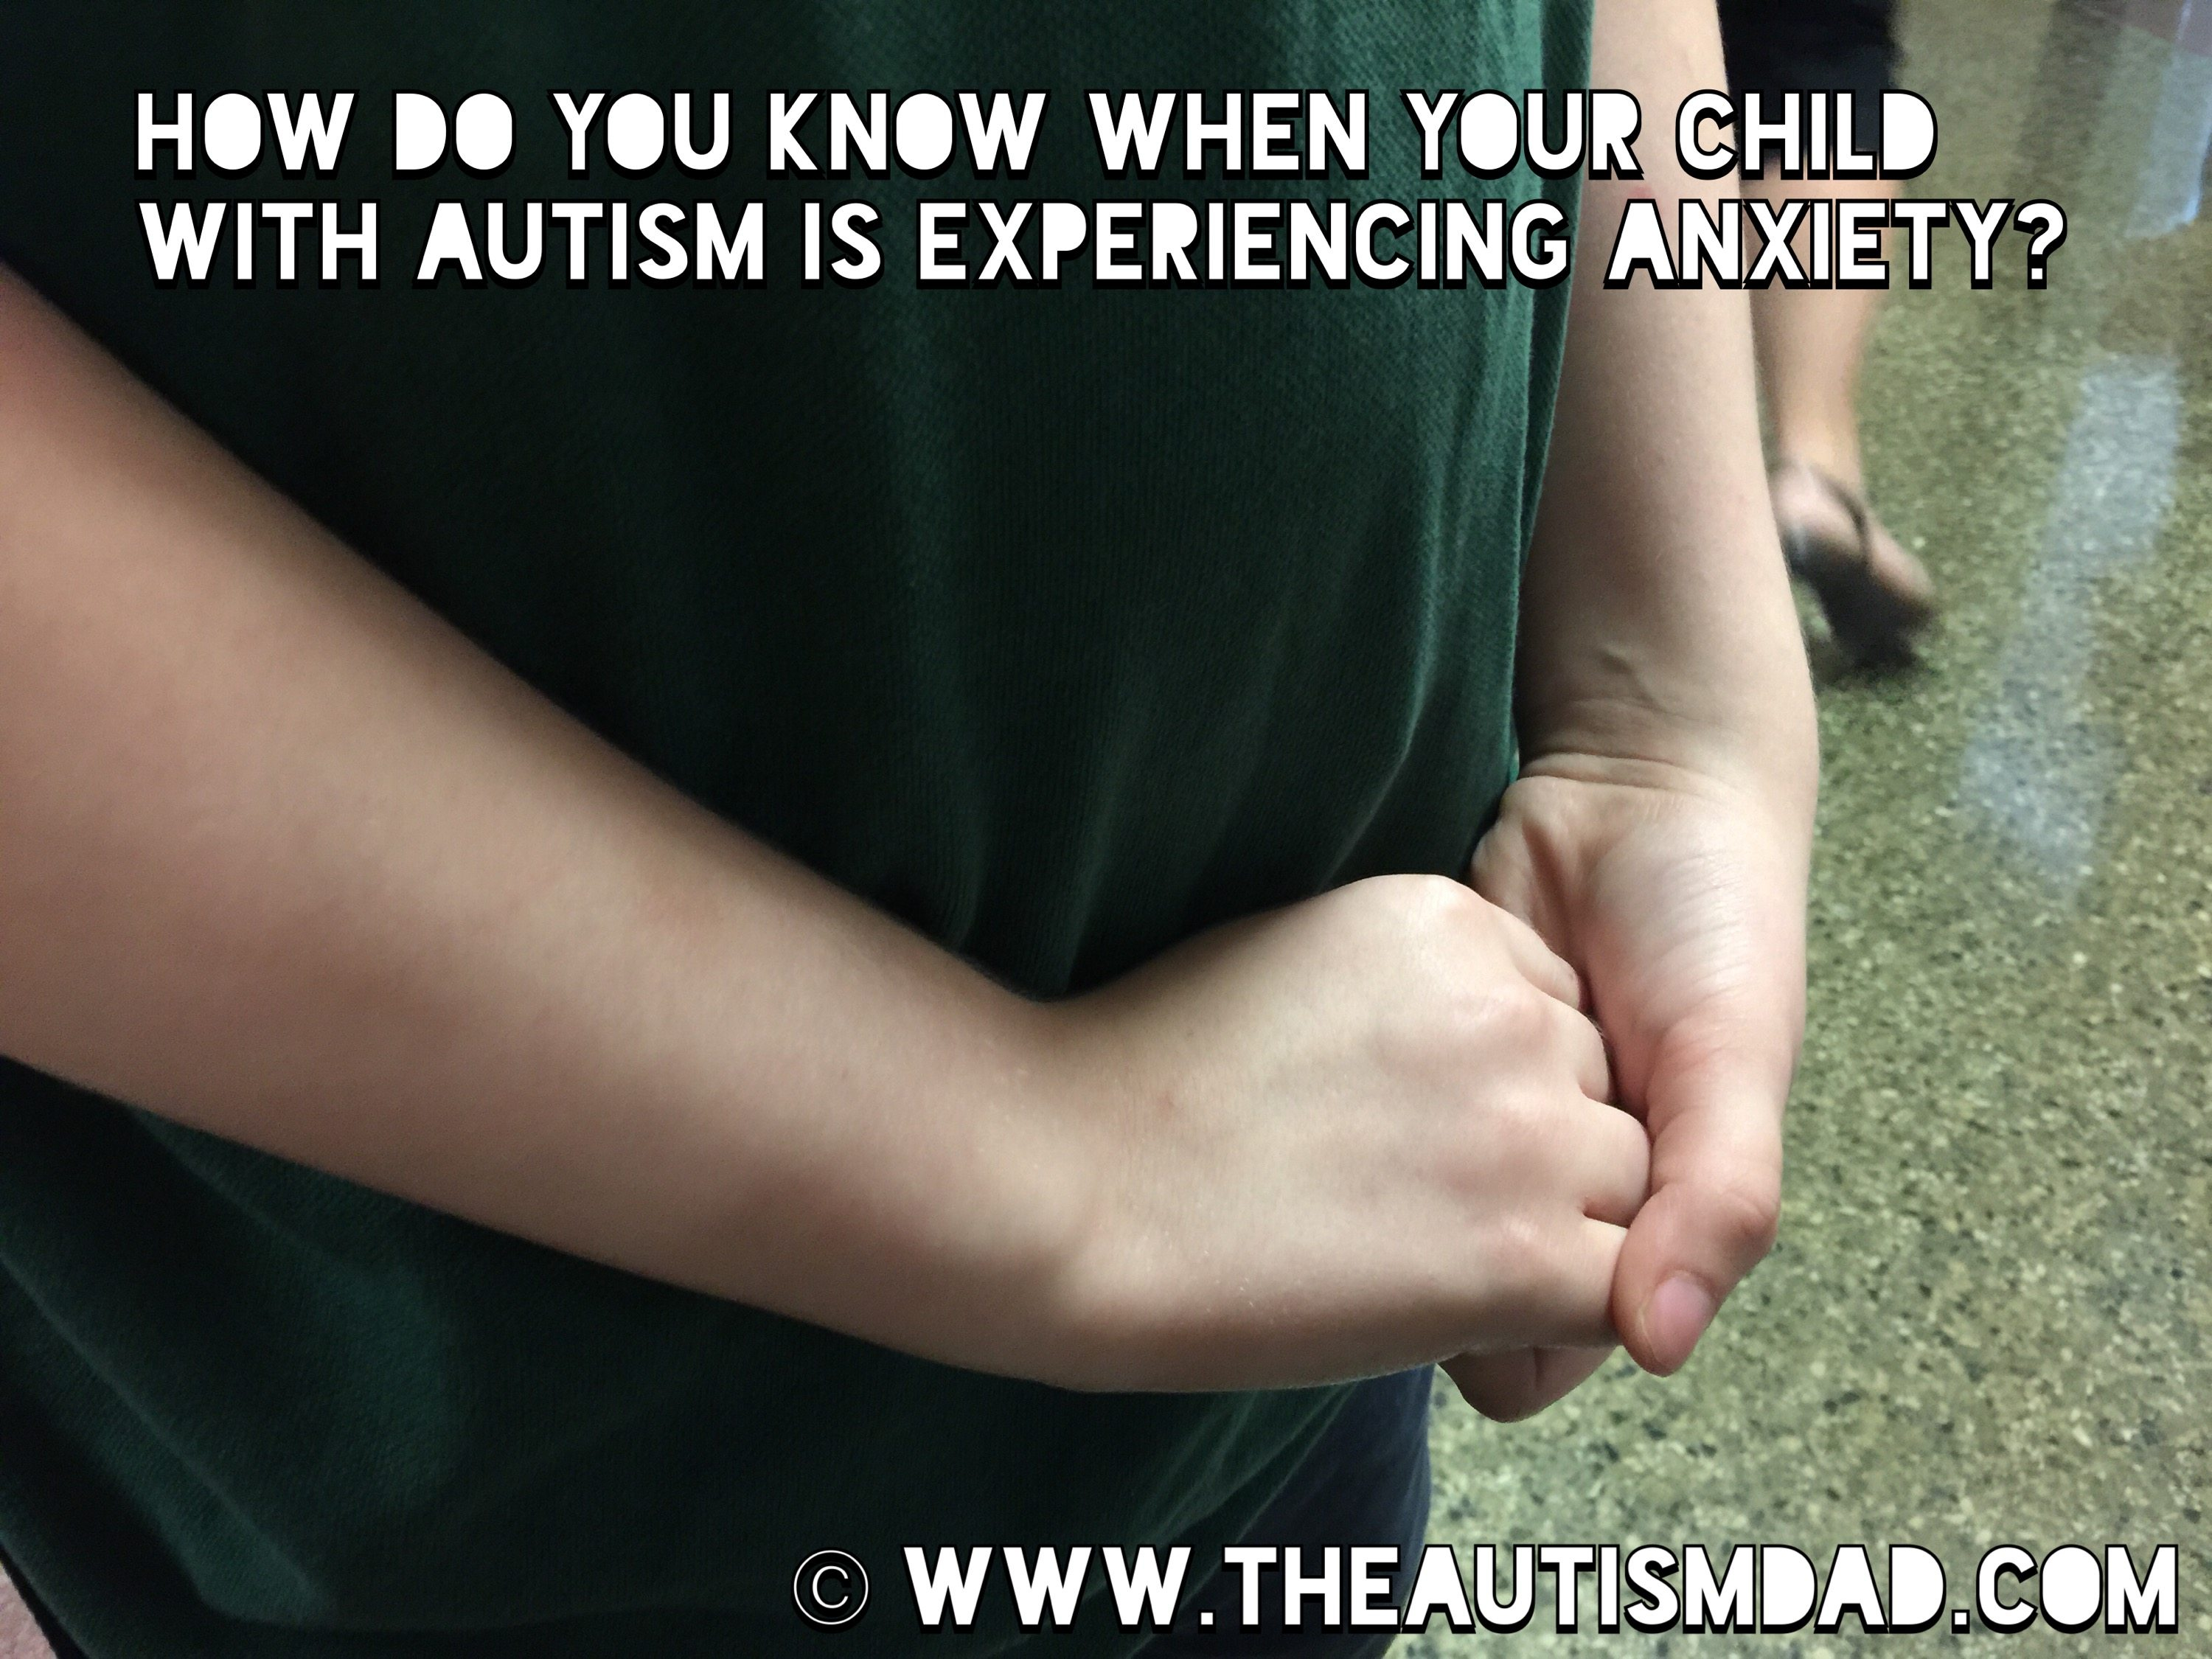 How do you know when your child with #Autism is experiencing anxiety?